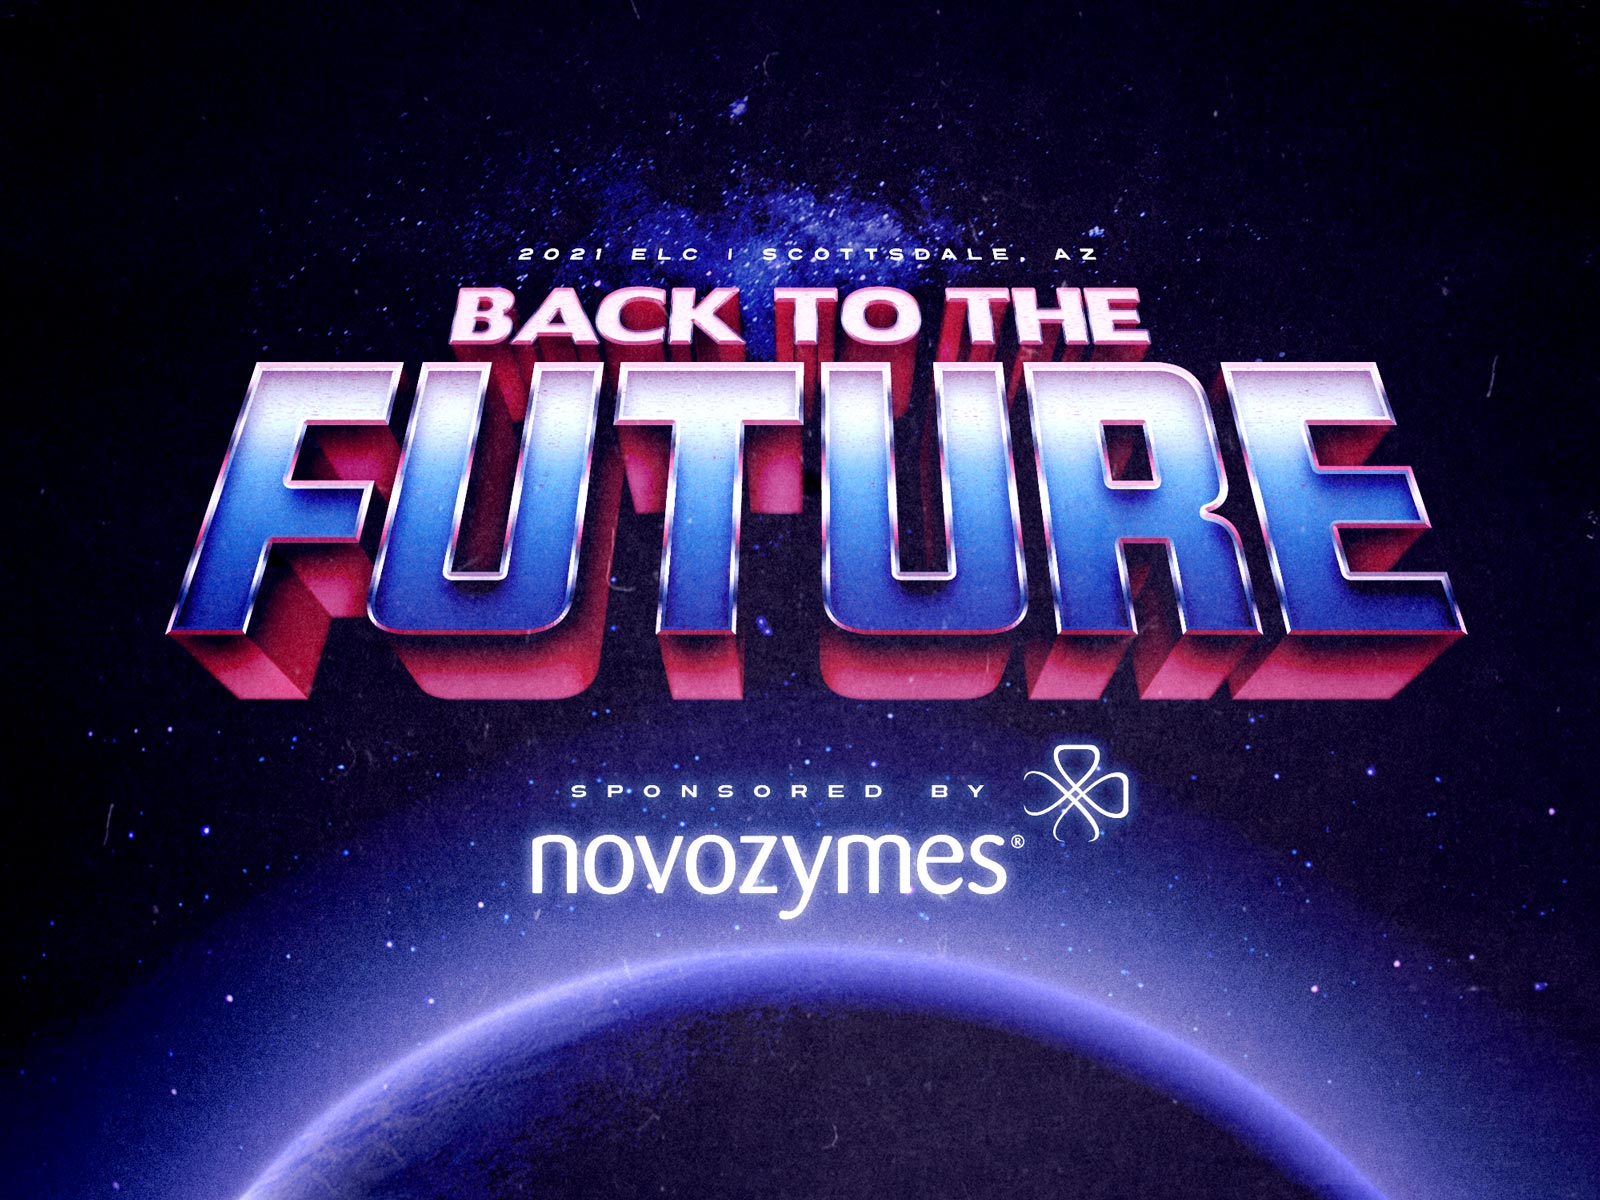 back to the future hosted by novozymes